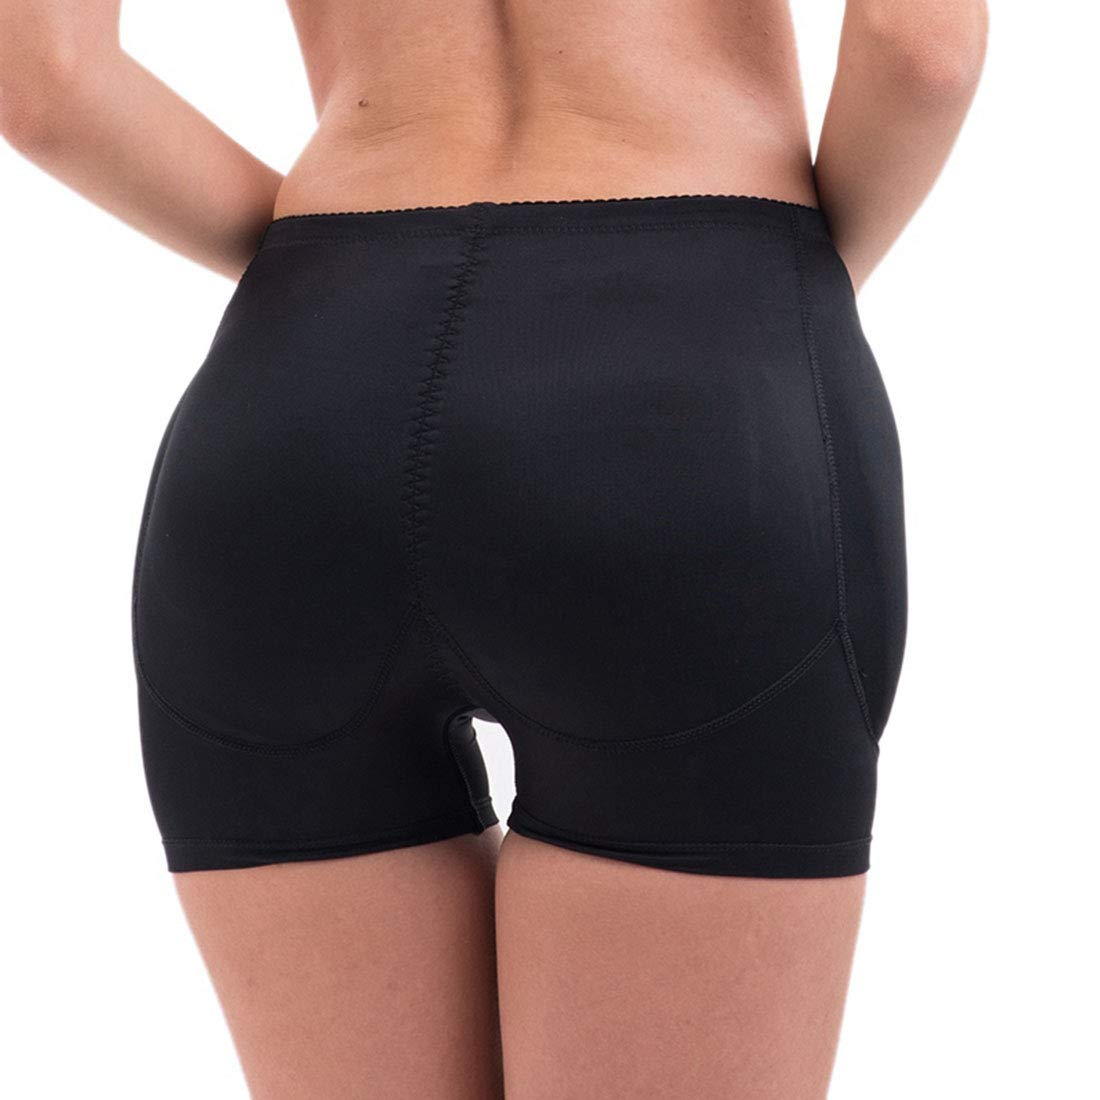 FREAHAP R Womens Butt Lifter Padded Panties Butt Panty Body Shaper